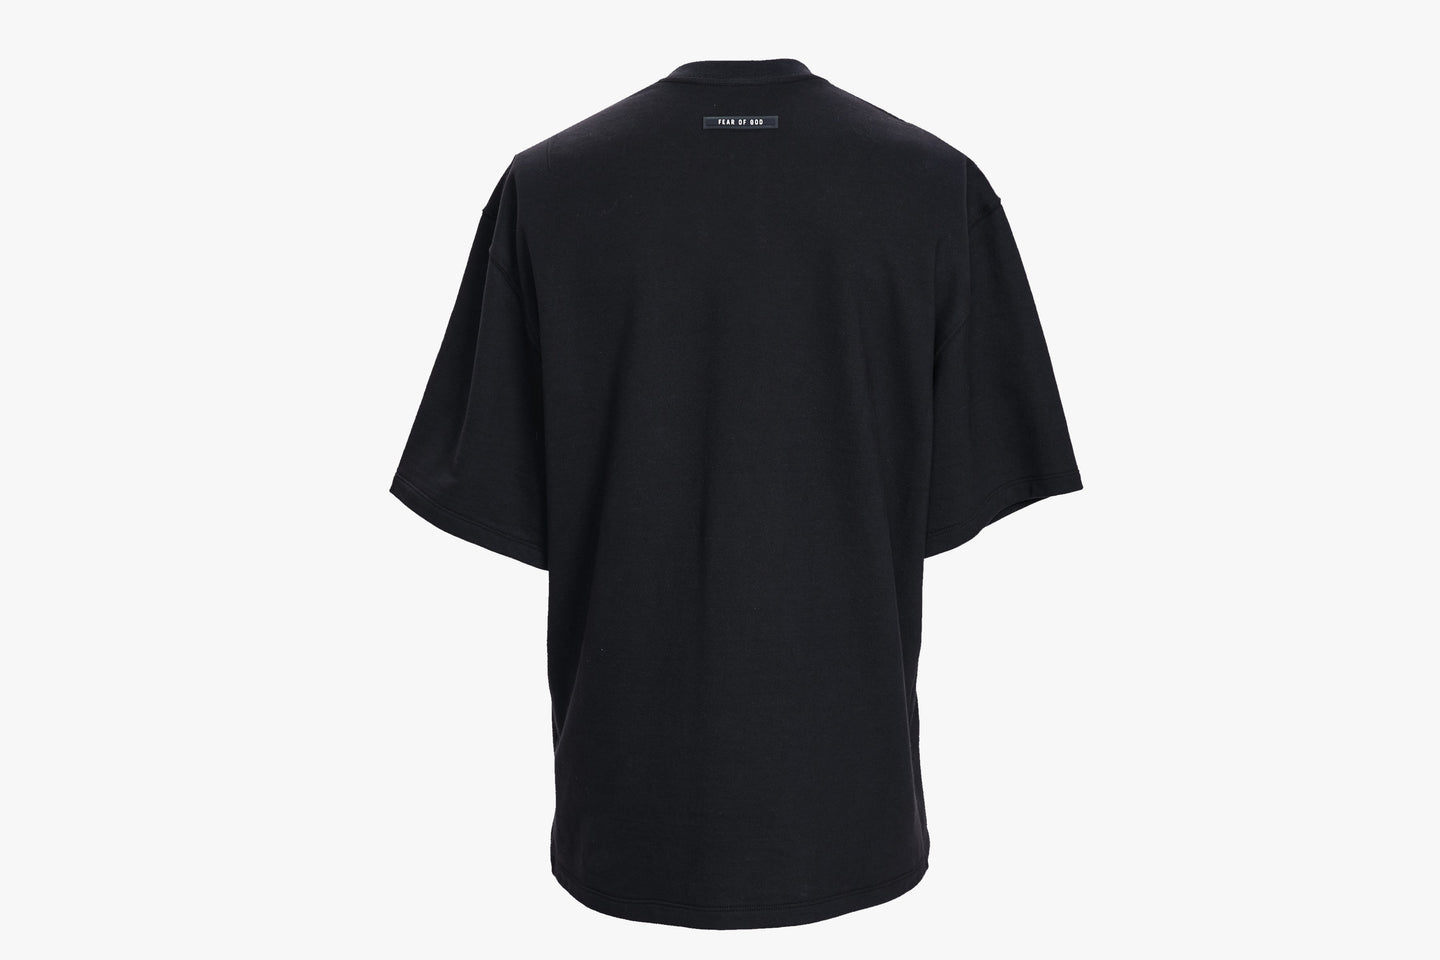 Short Sleeve Half Zip Tee - Short Sleeve Half Zip Tee